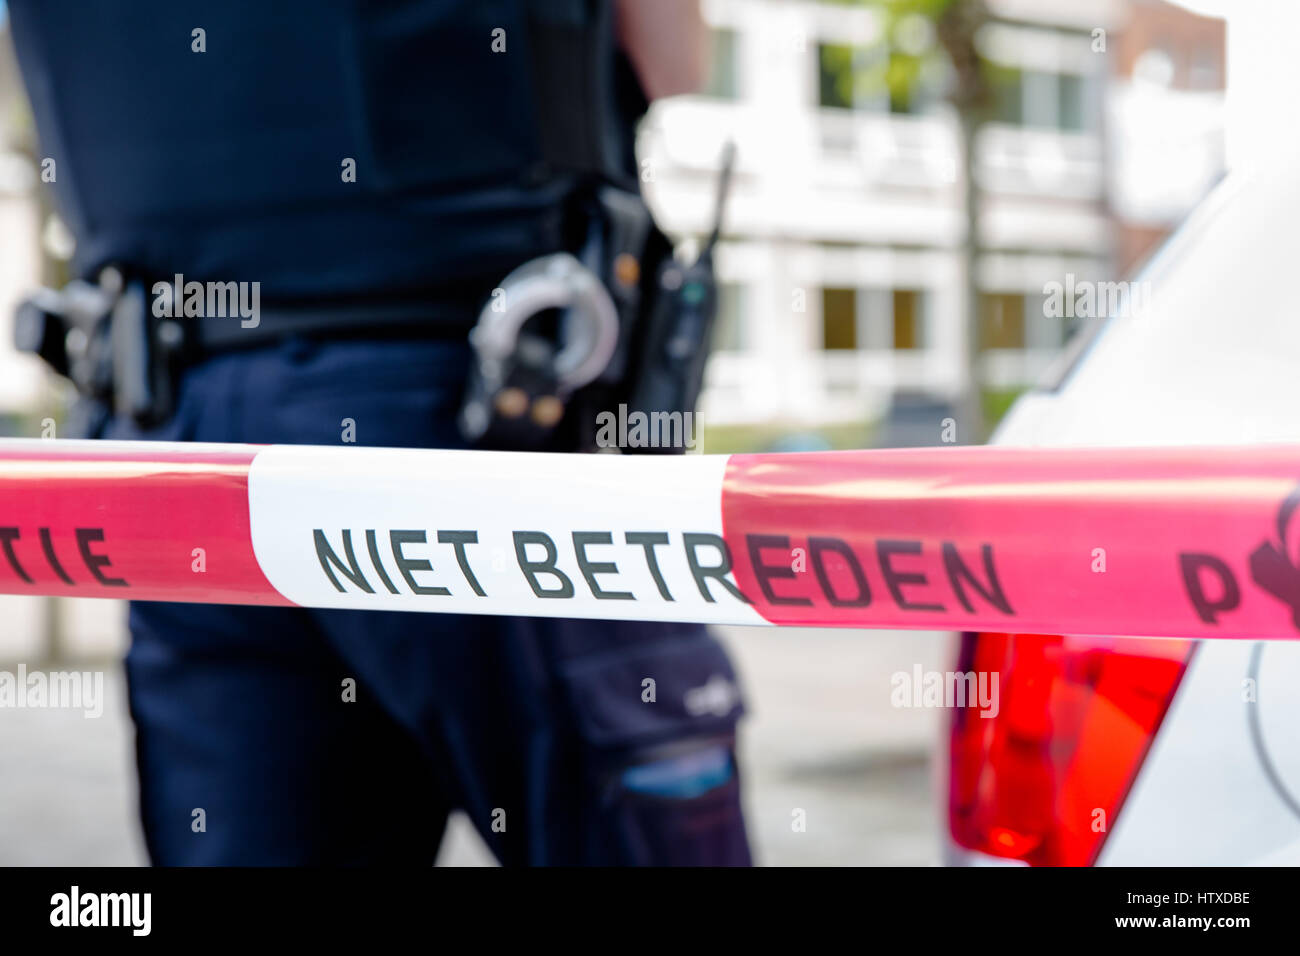 Dutch police line do not cross. Red plastic tape and  police officer, gun belt, handcuffs and gun on a crime scene. - Stock Image